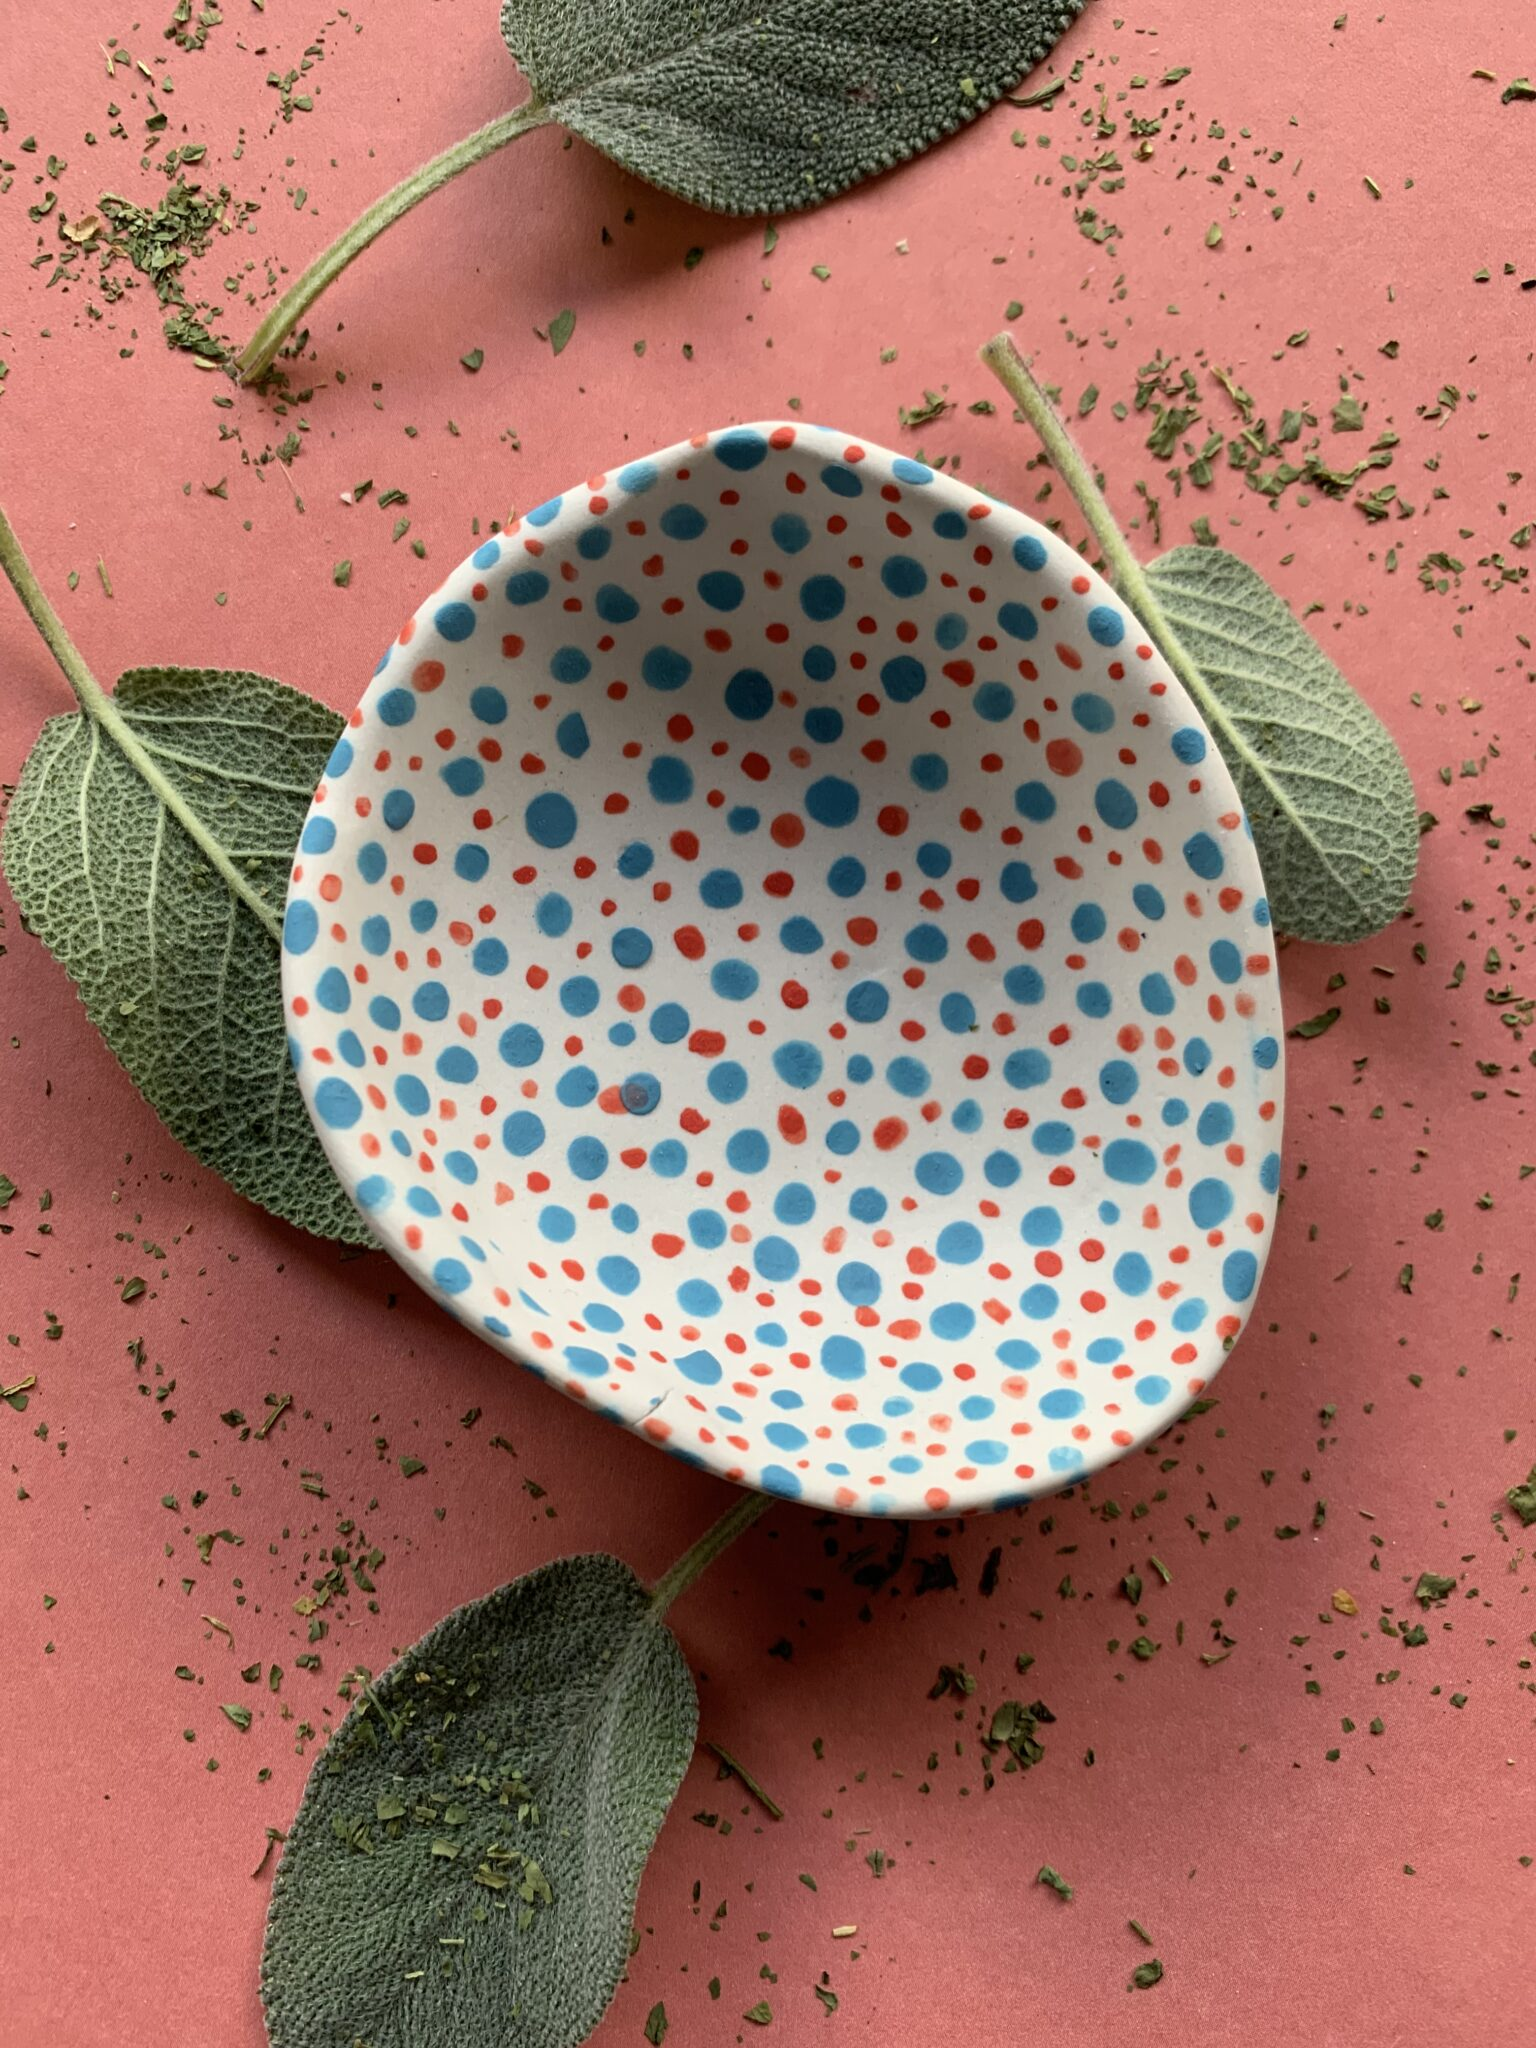 funky-red-and-green-polka-dots-porcelain-bowl-by-the-intrepid-potter-by-theintrepidpotter